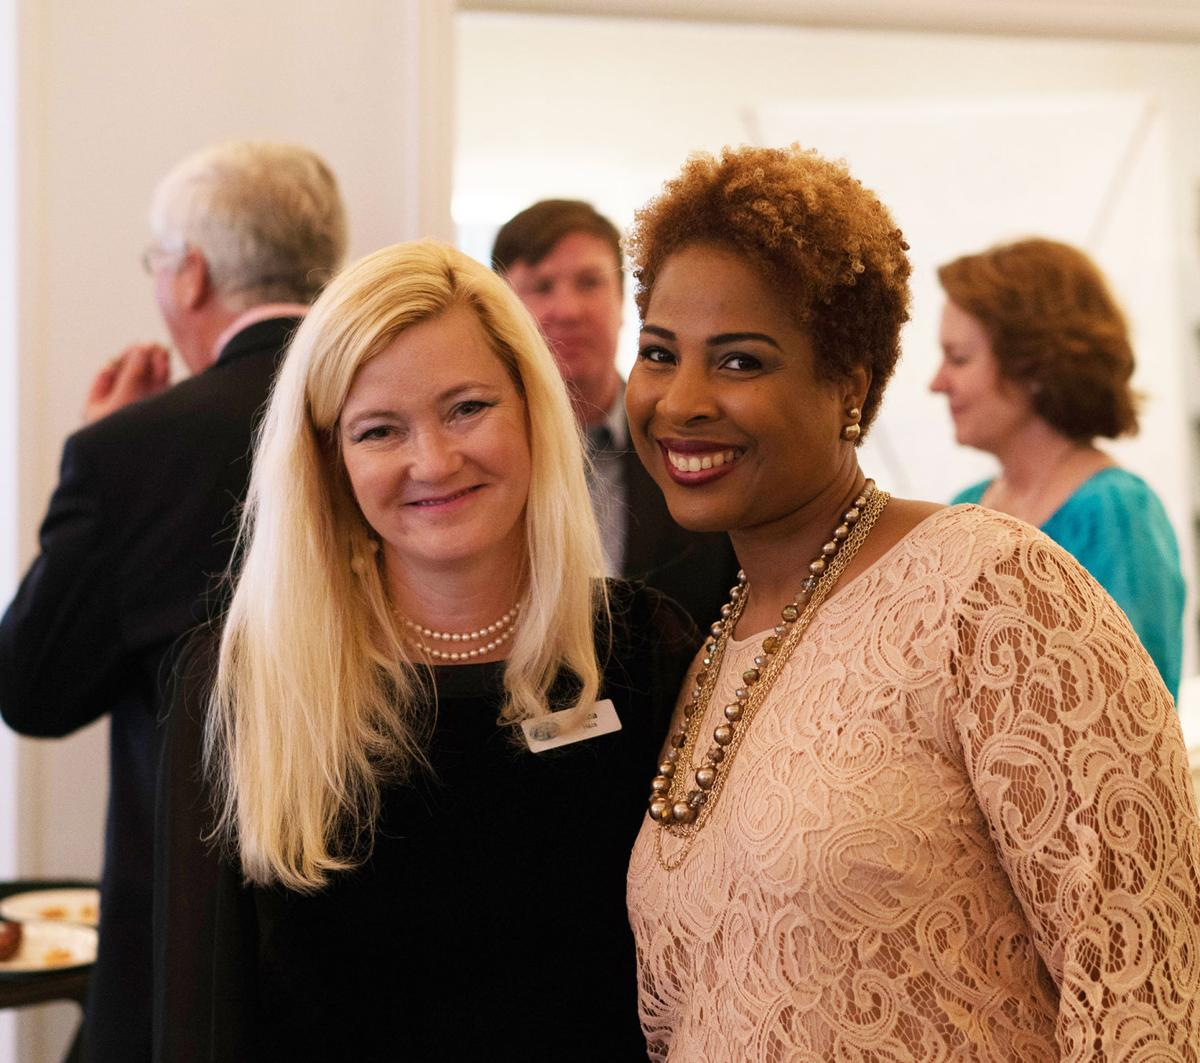 The Gathering Place hosts Sweetest Thing on St. Simons Island